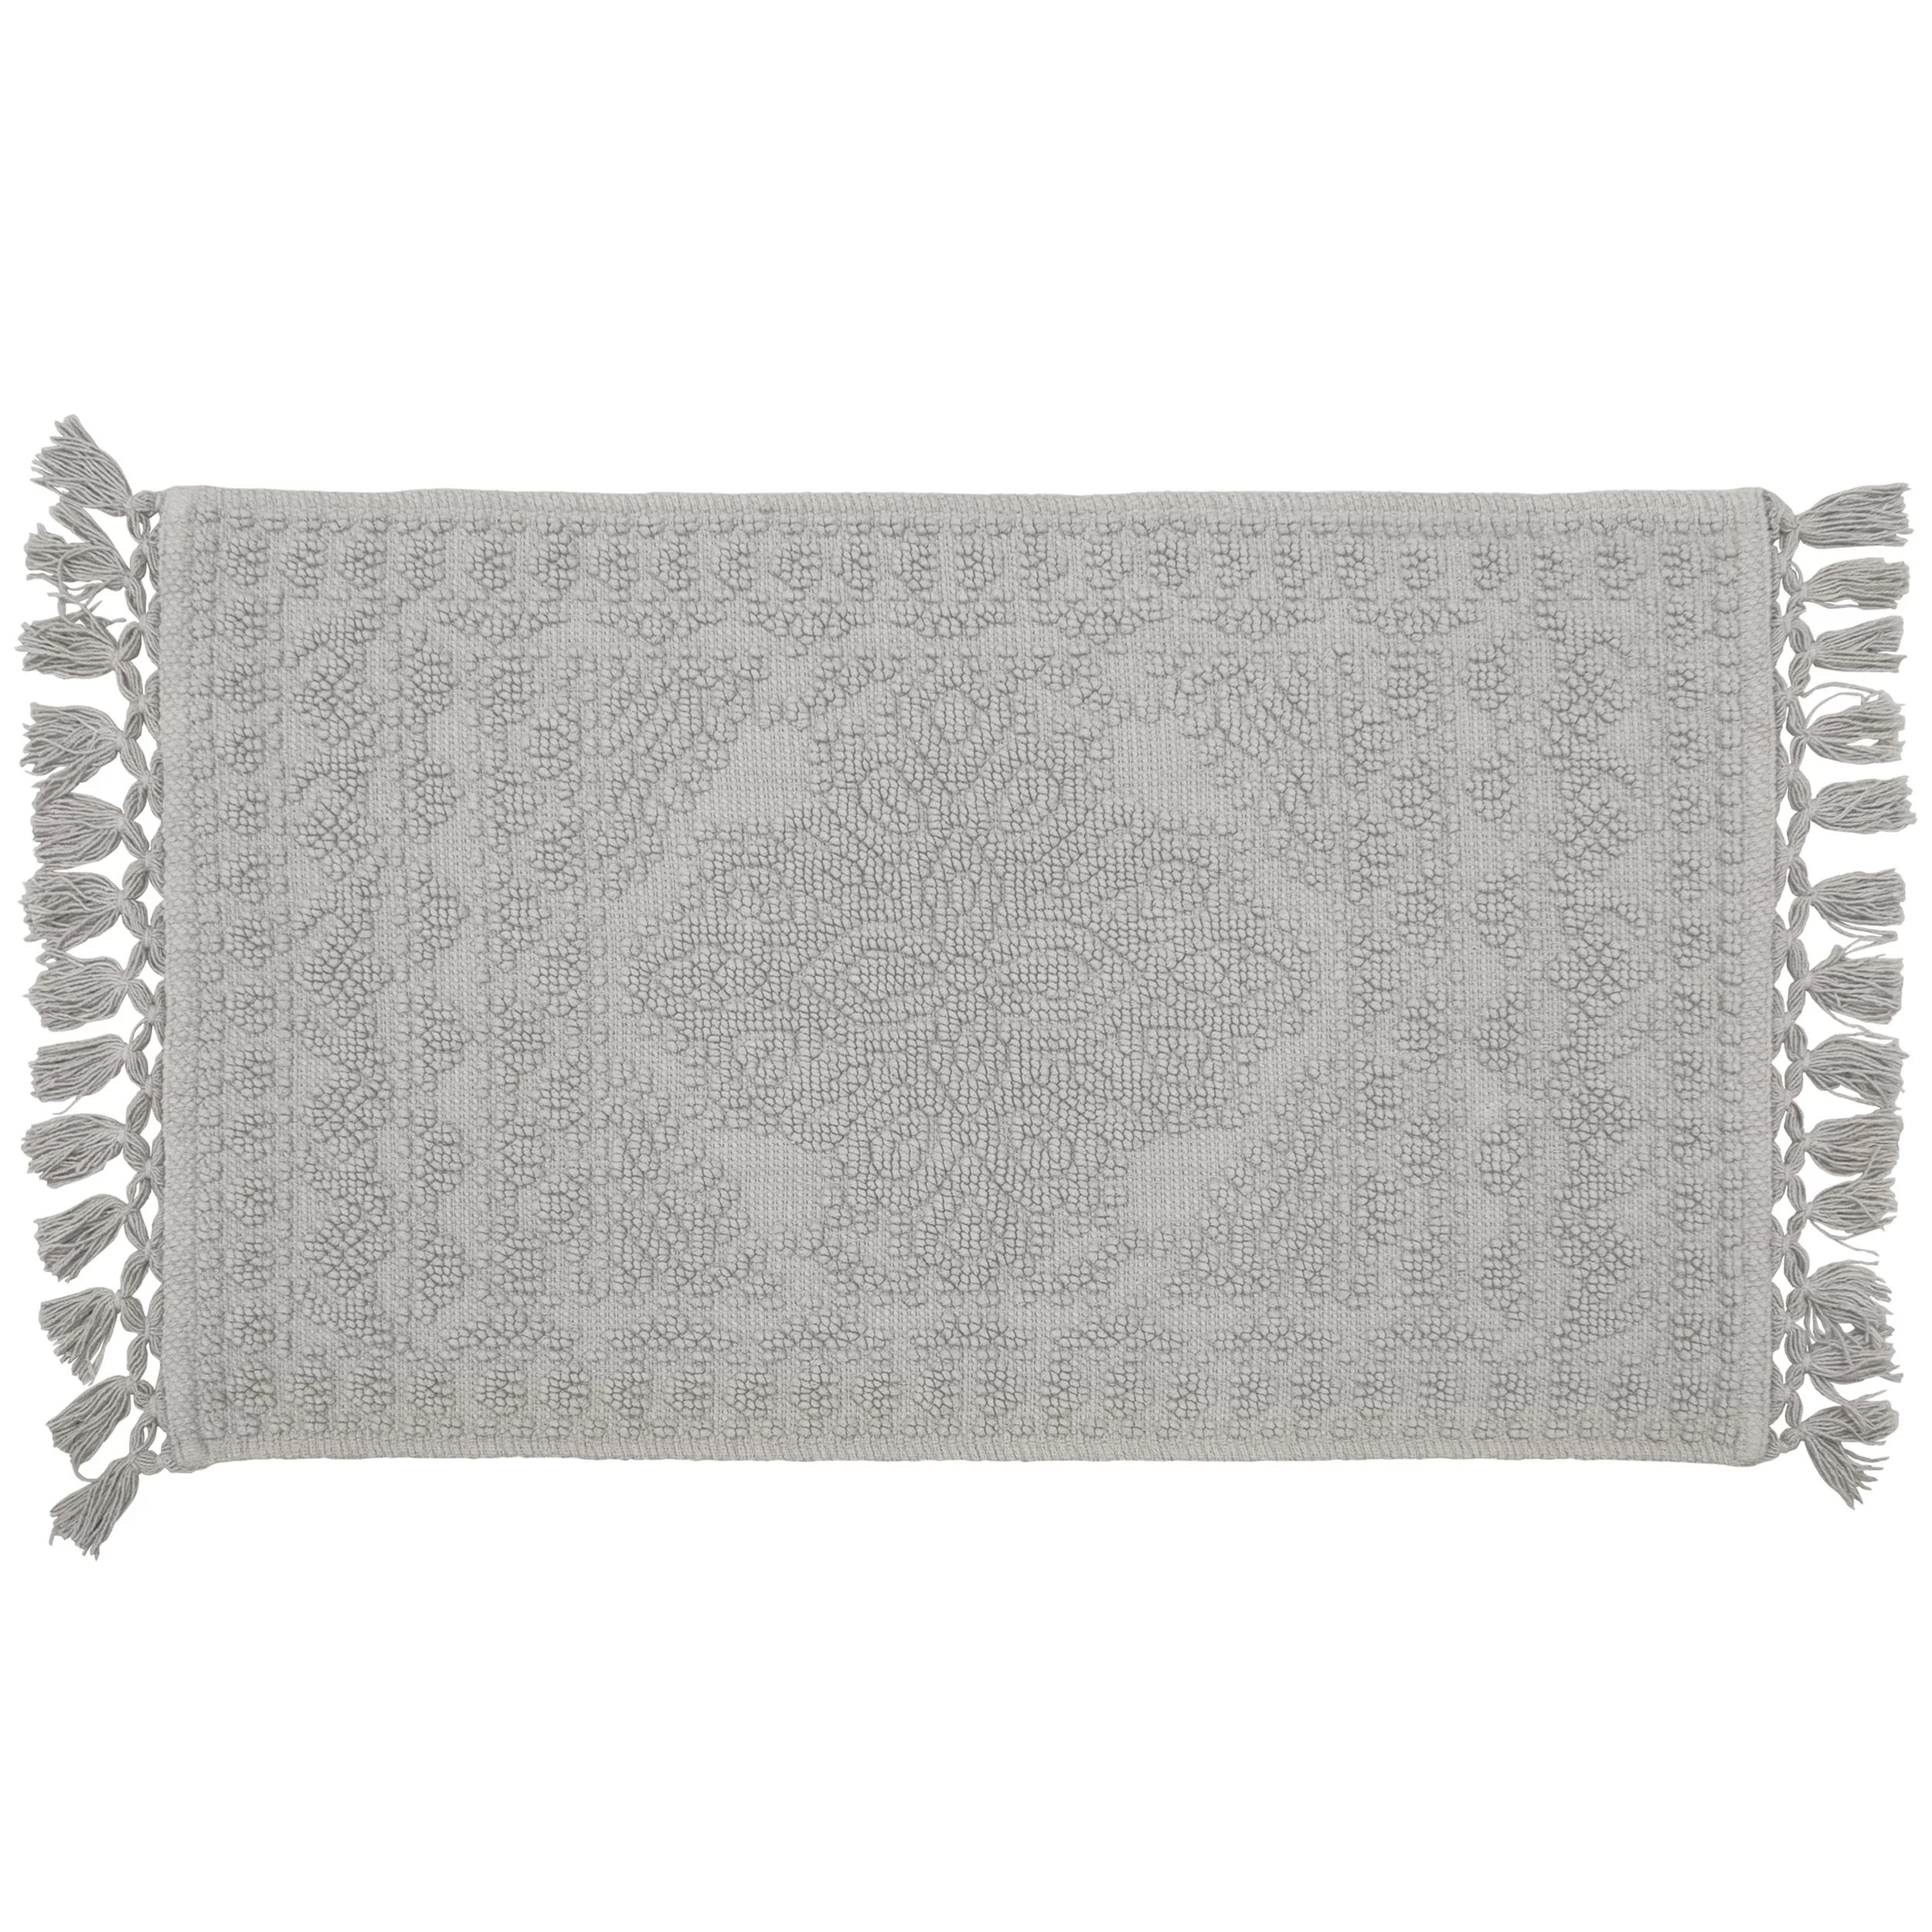 French Connection Feickert Fringe Cotton Bath Rug